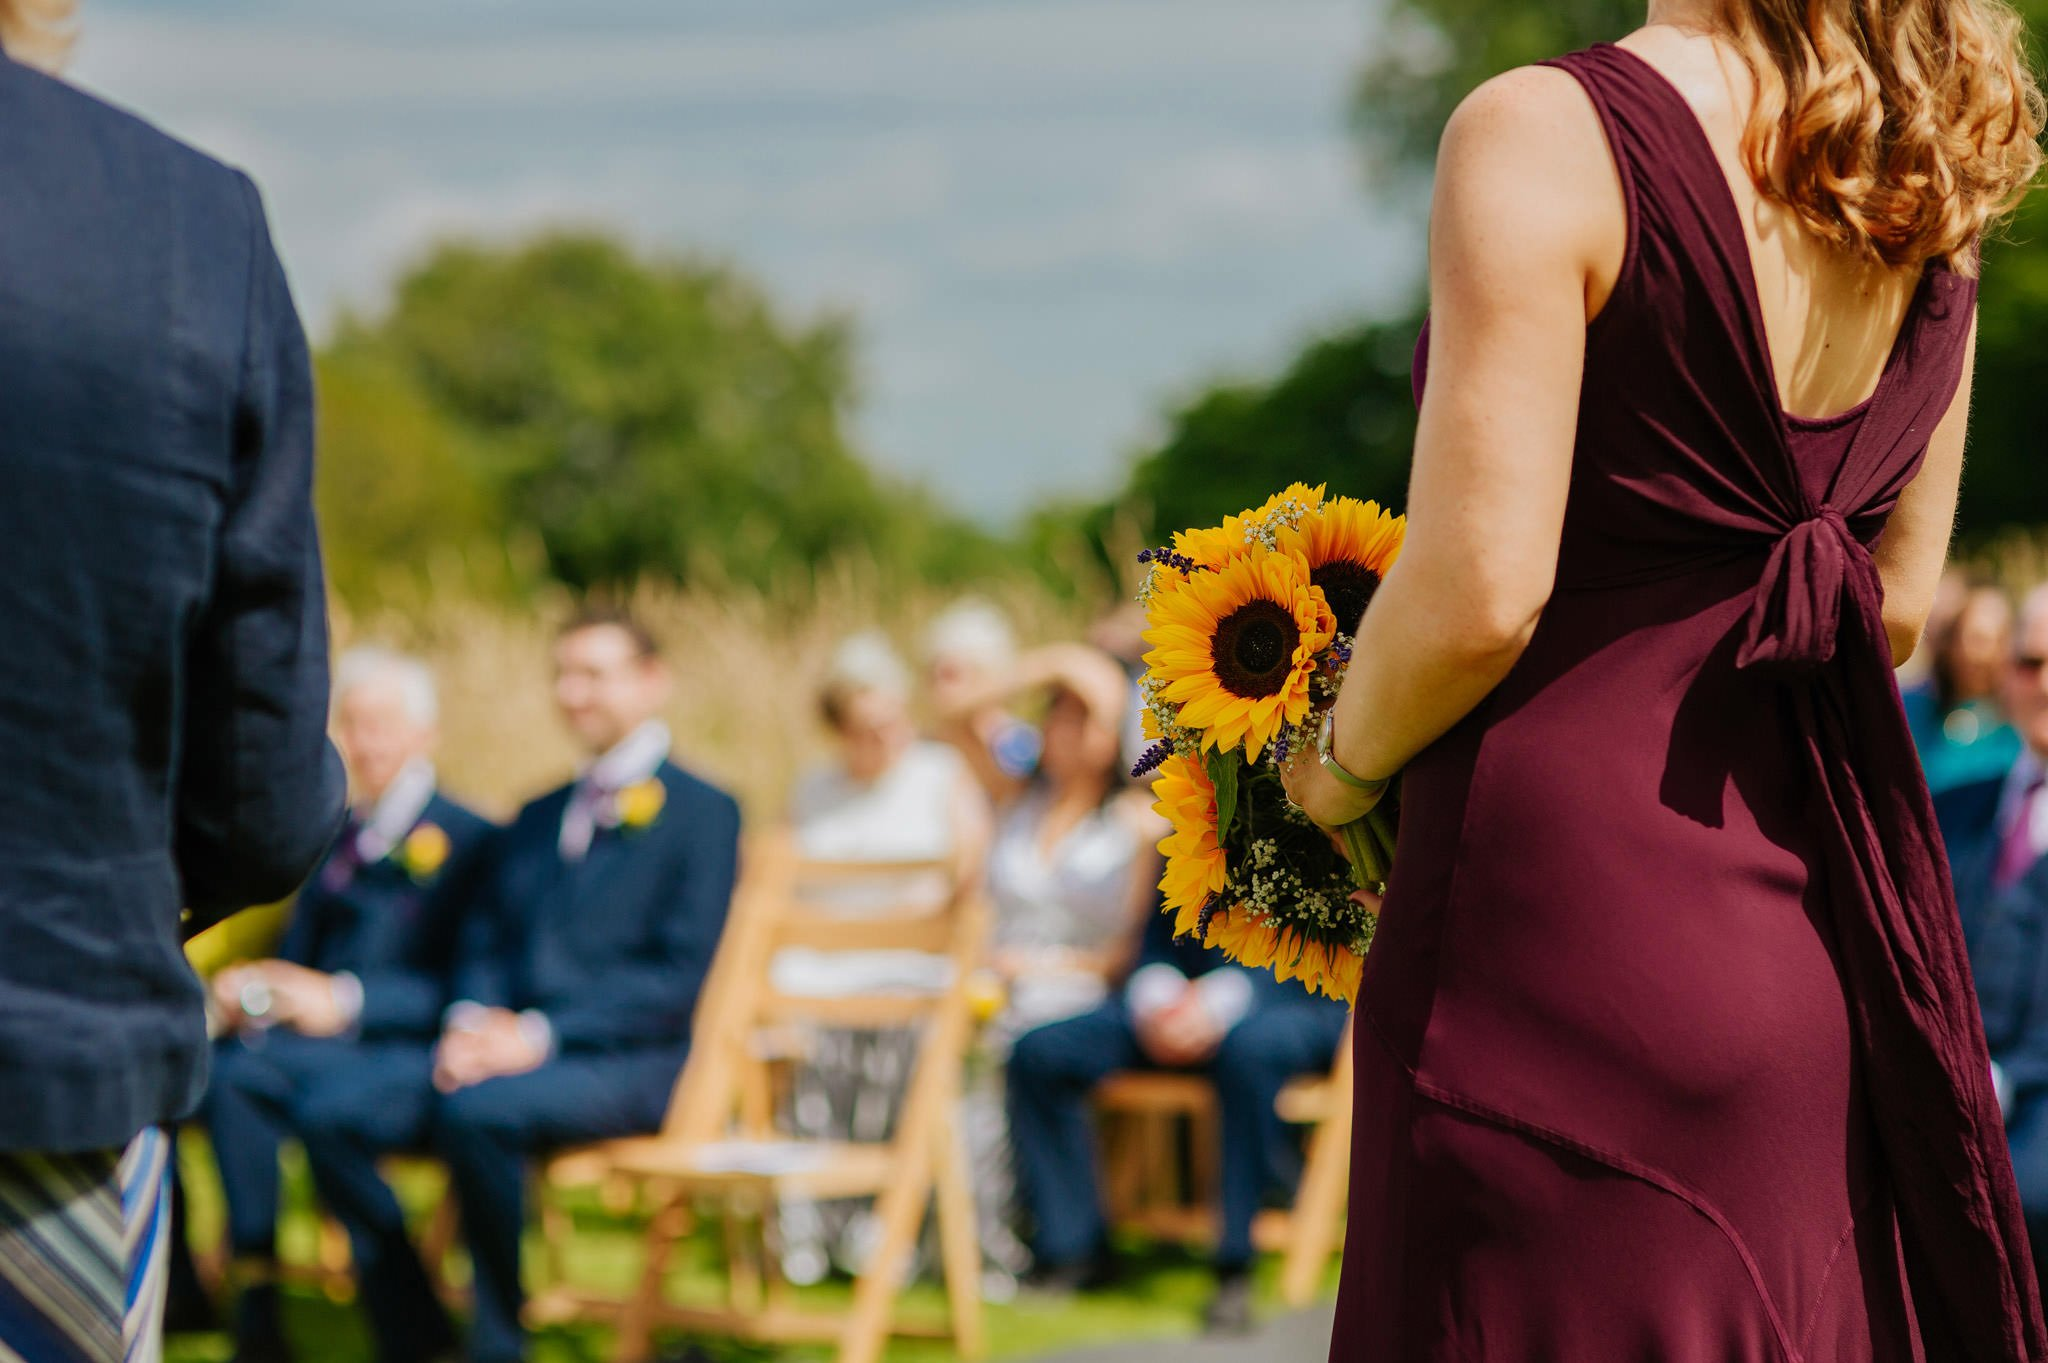 Wedding photography at Homme House in Herefordshire, West Midlands 31